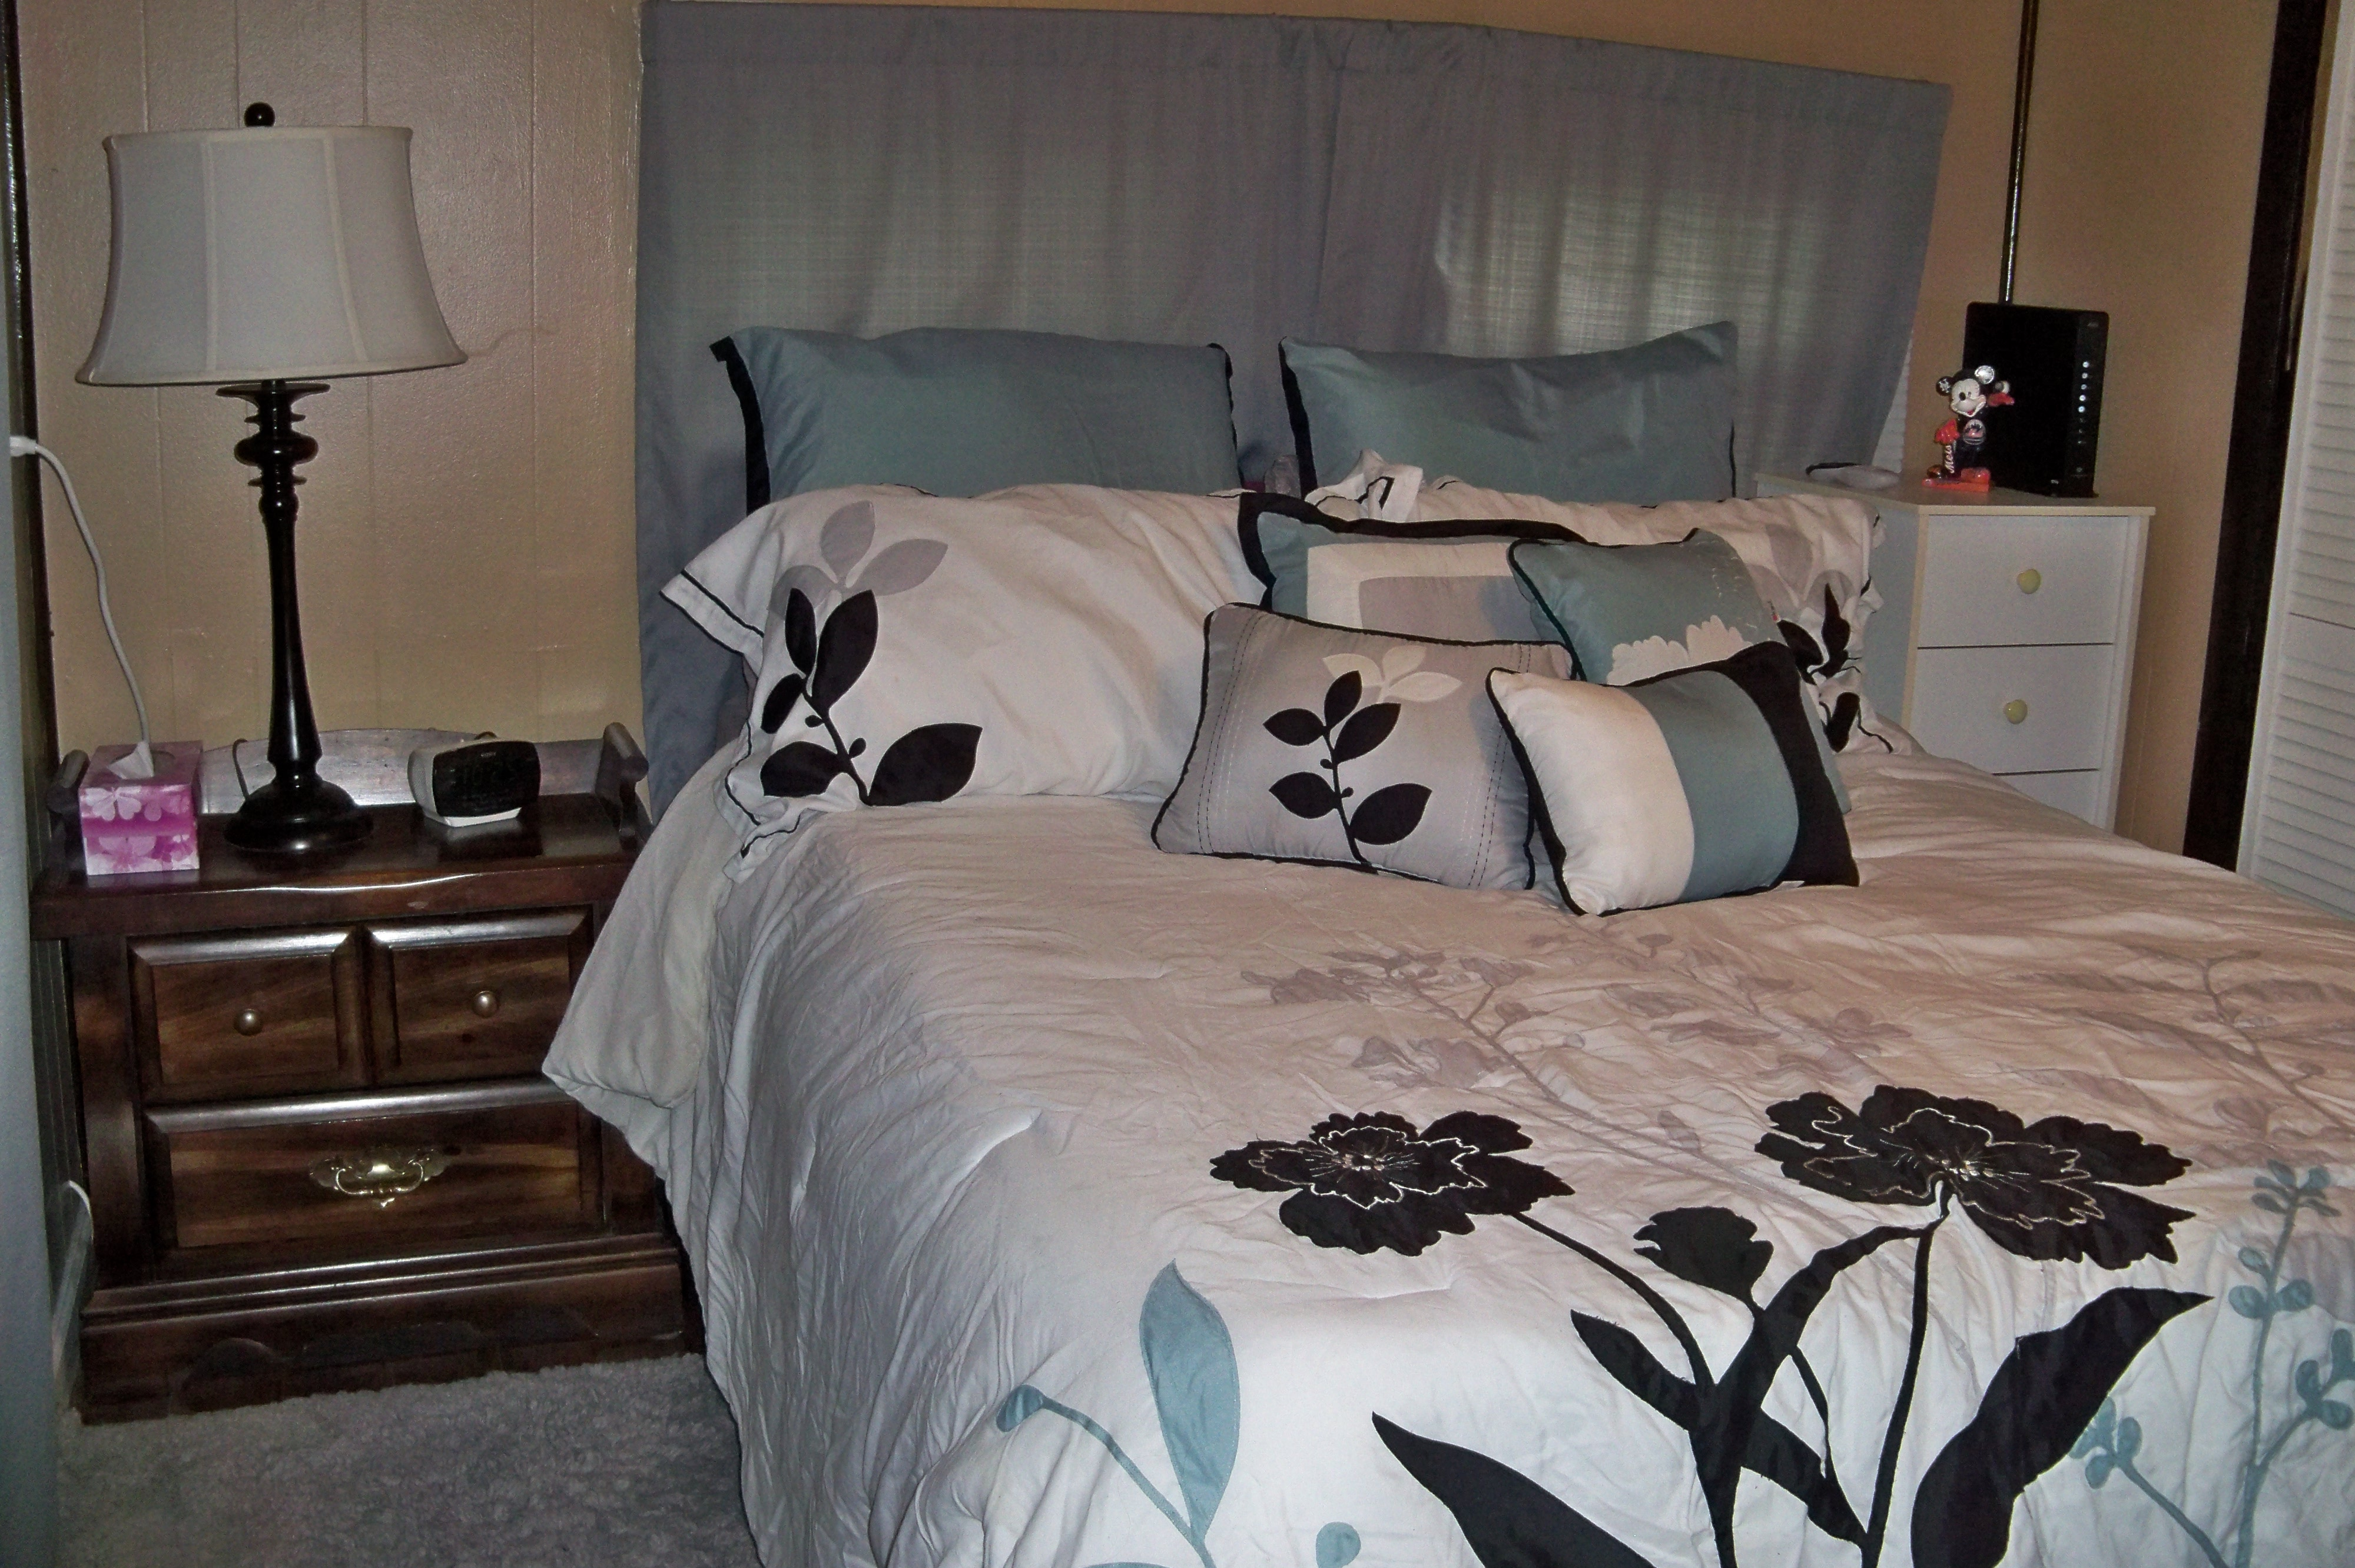 Galaxy manor pre owned homes for sale galaxy manor sales - 2 master bedroom houses for sale ...